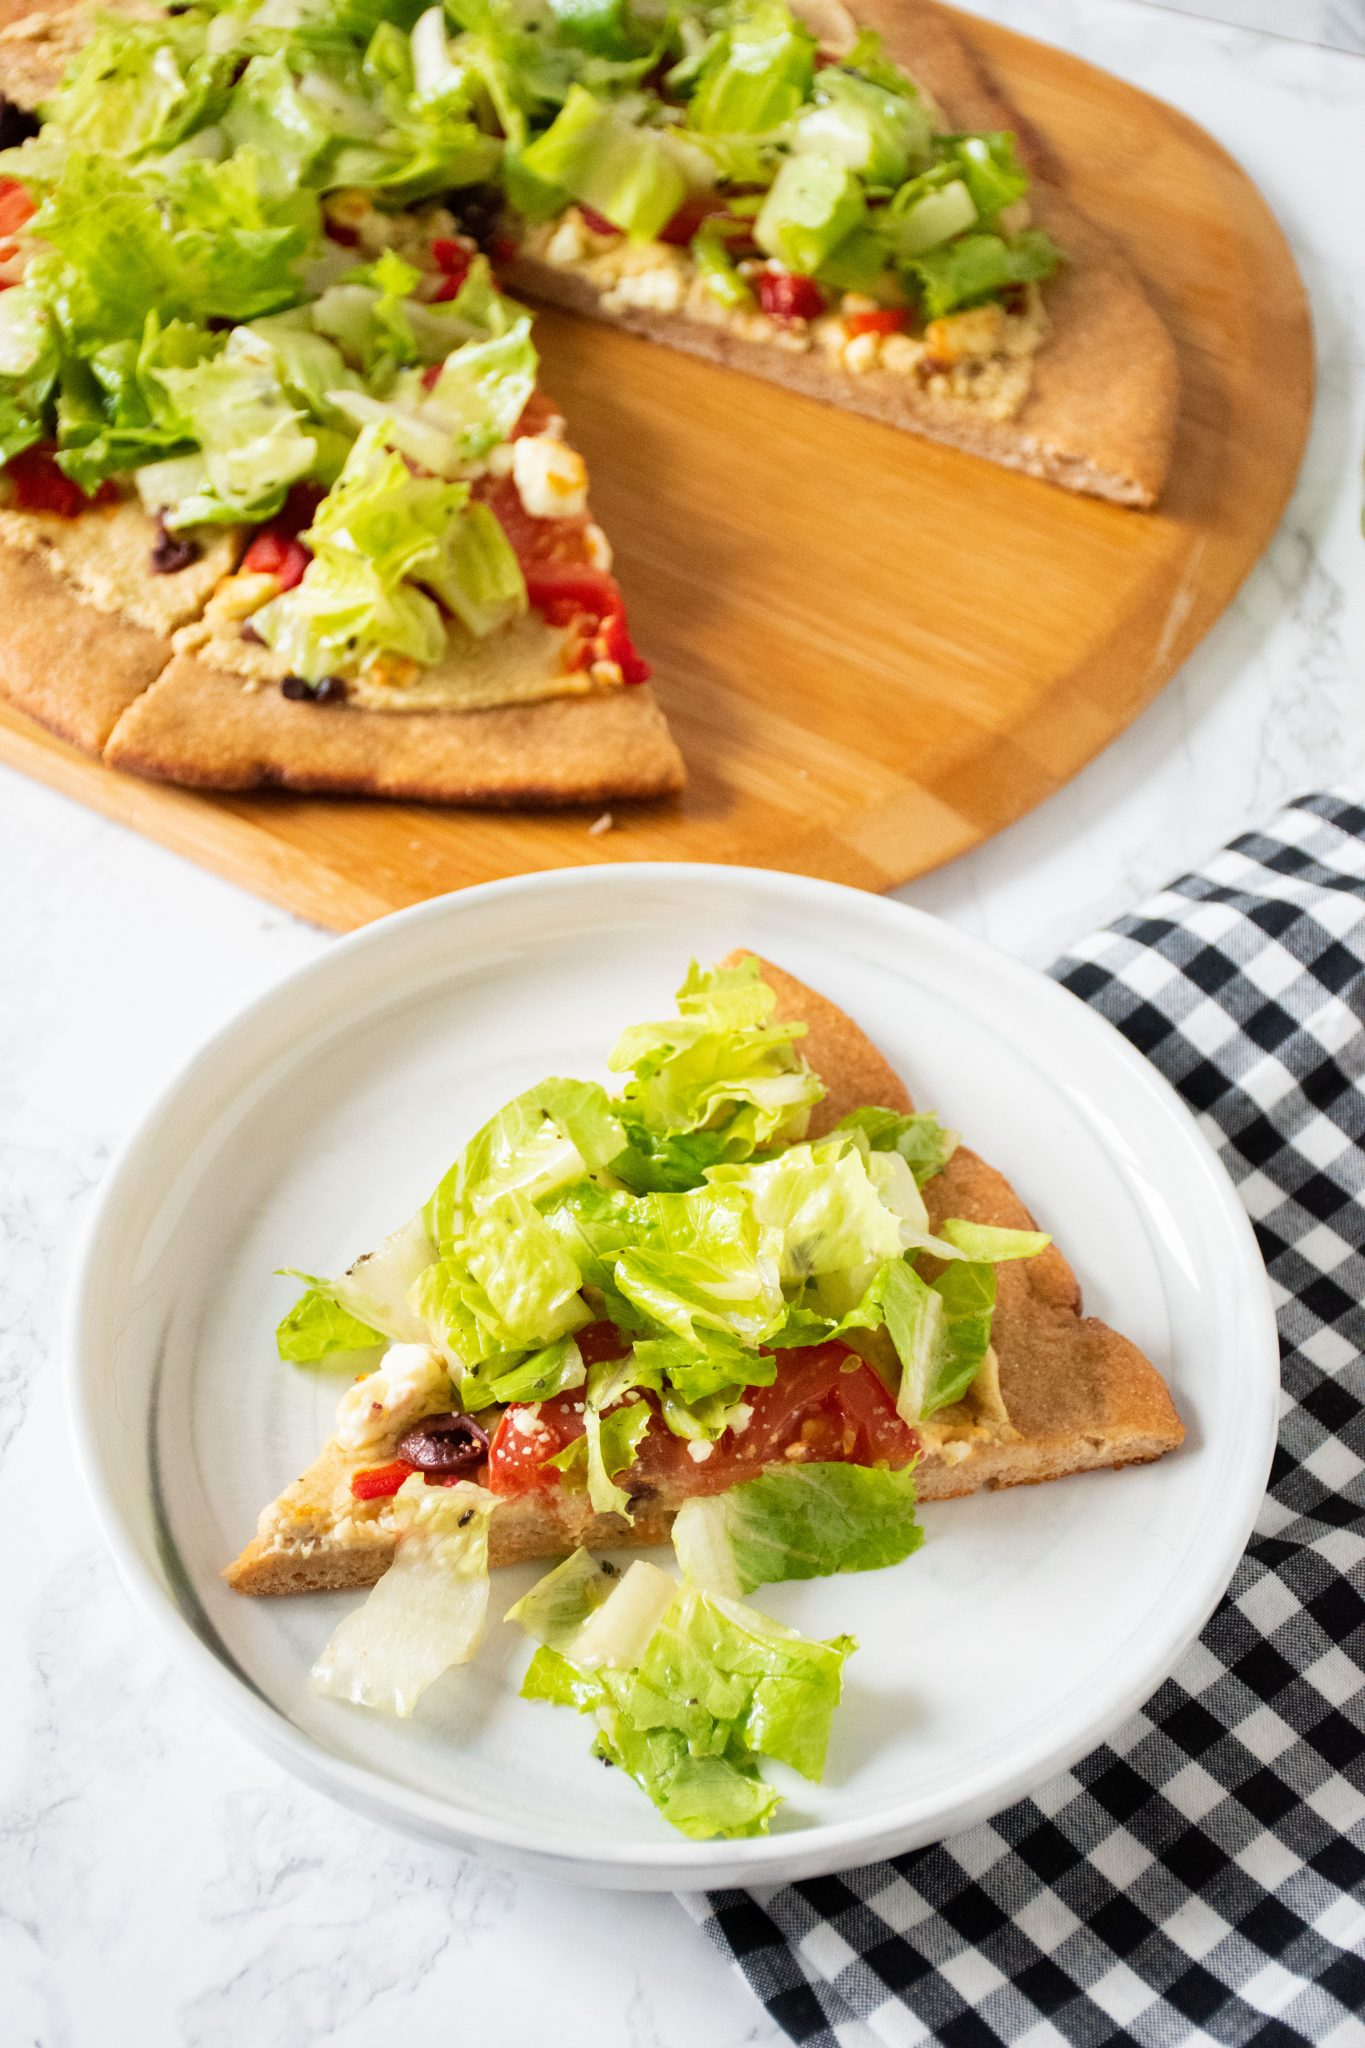 Slice of pizza on a plate. In background is the rest of the pizza on a peel, with whole wheat crust, topped with salad.